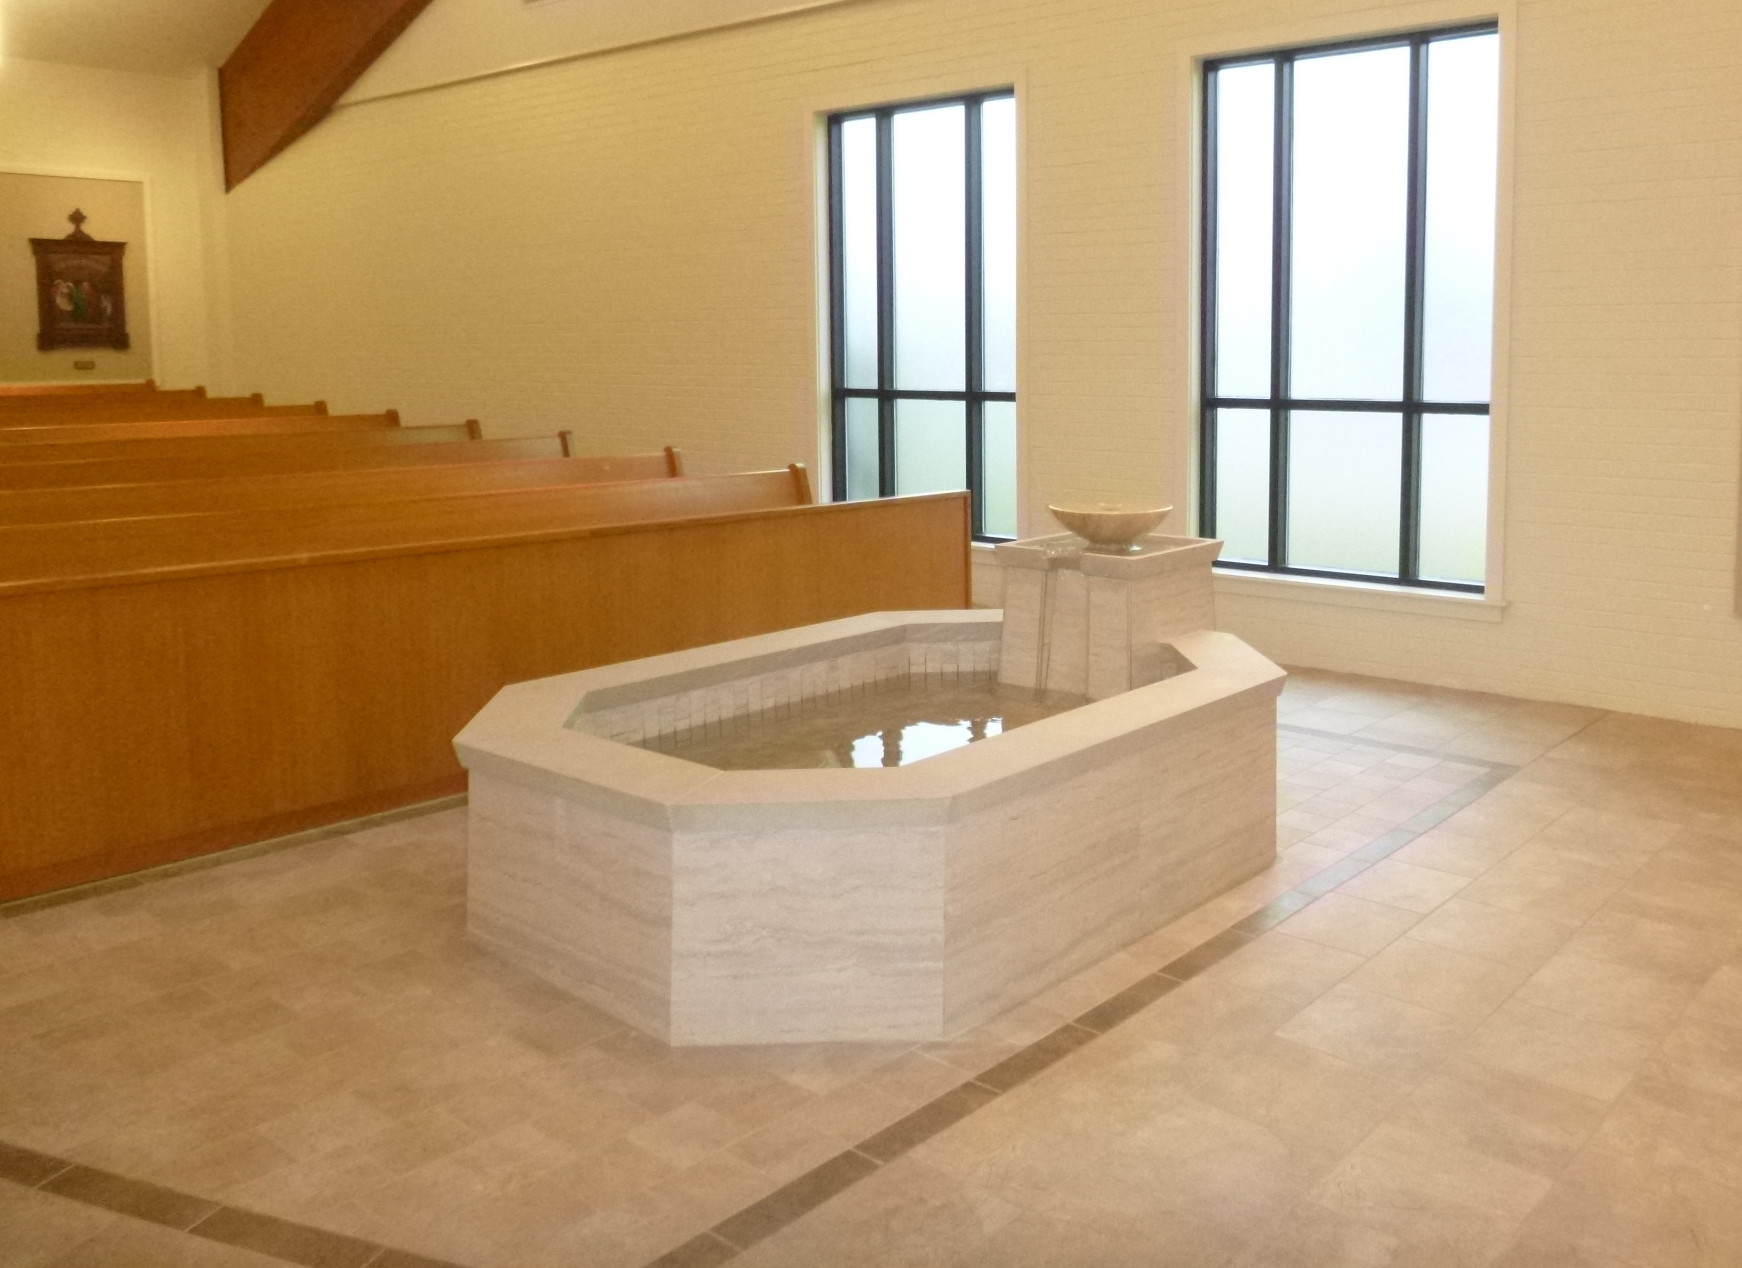 baptismal-font-holy-family-port-allen-la-by-water-structures